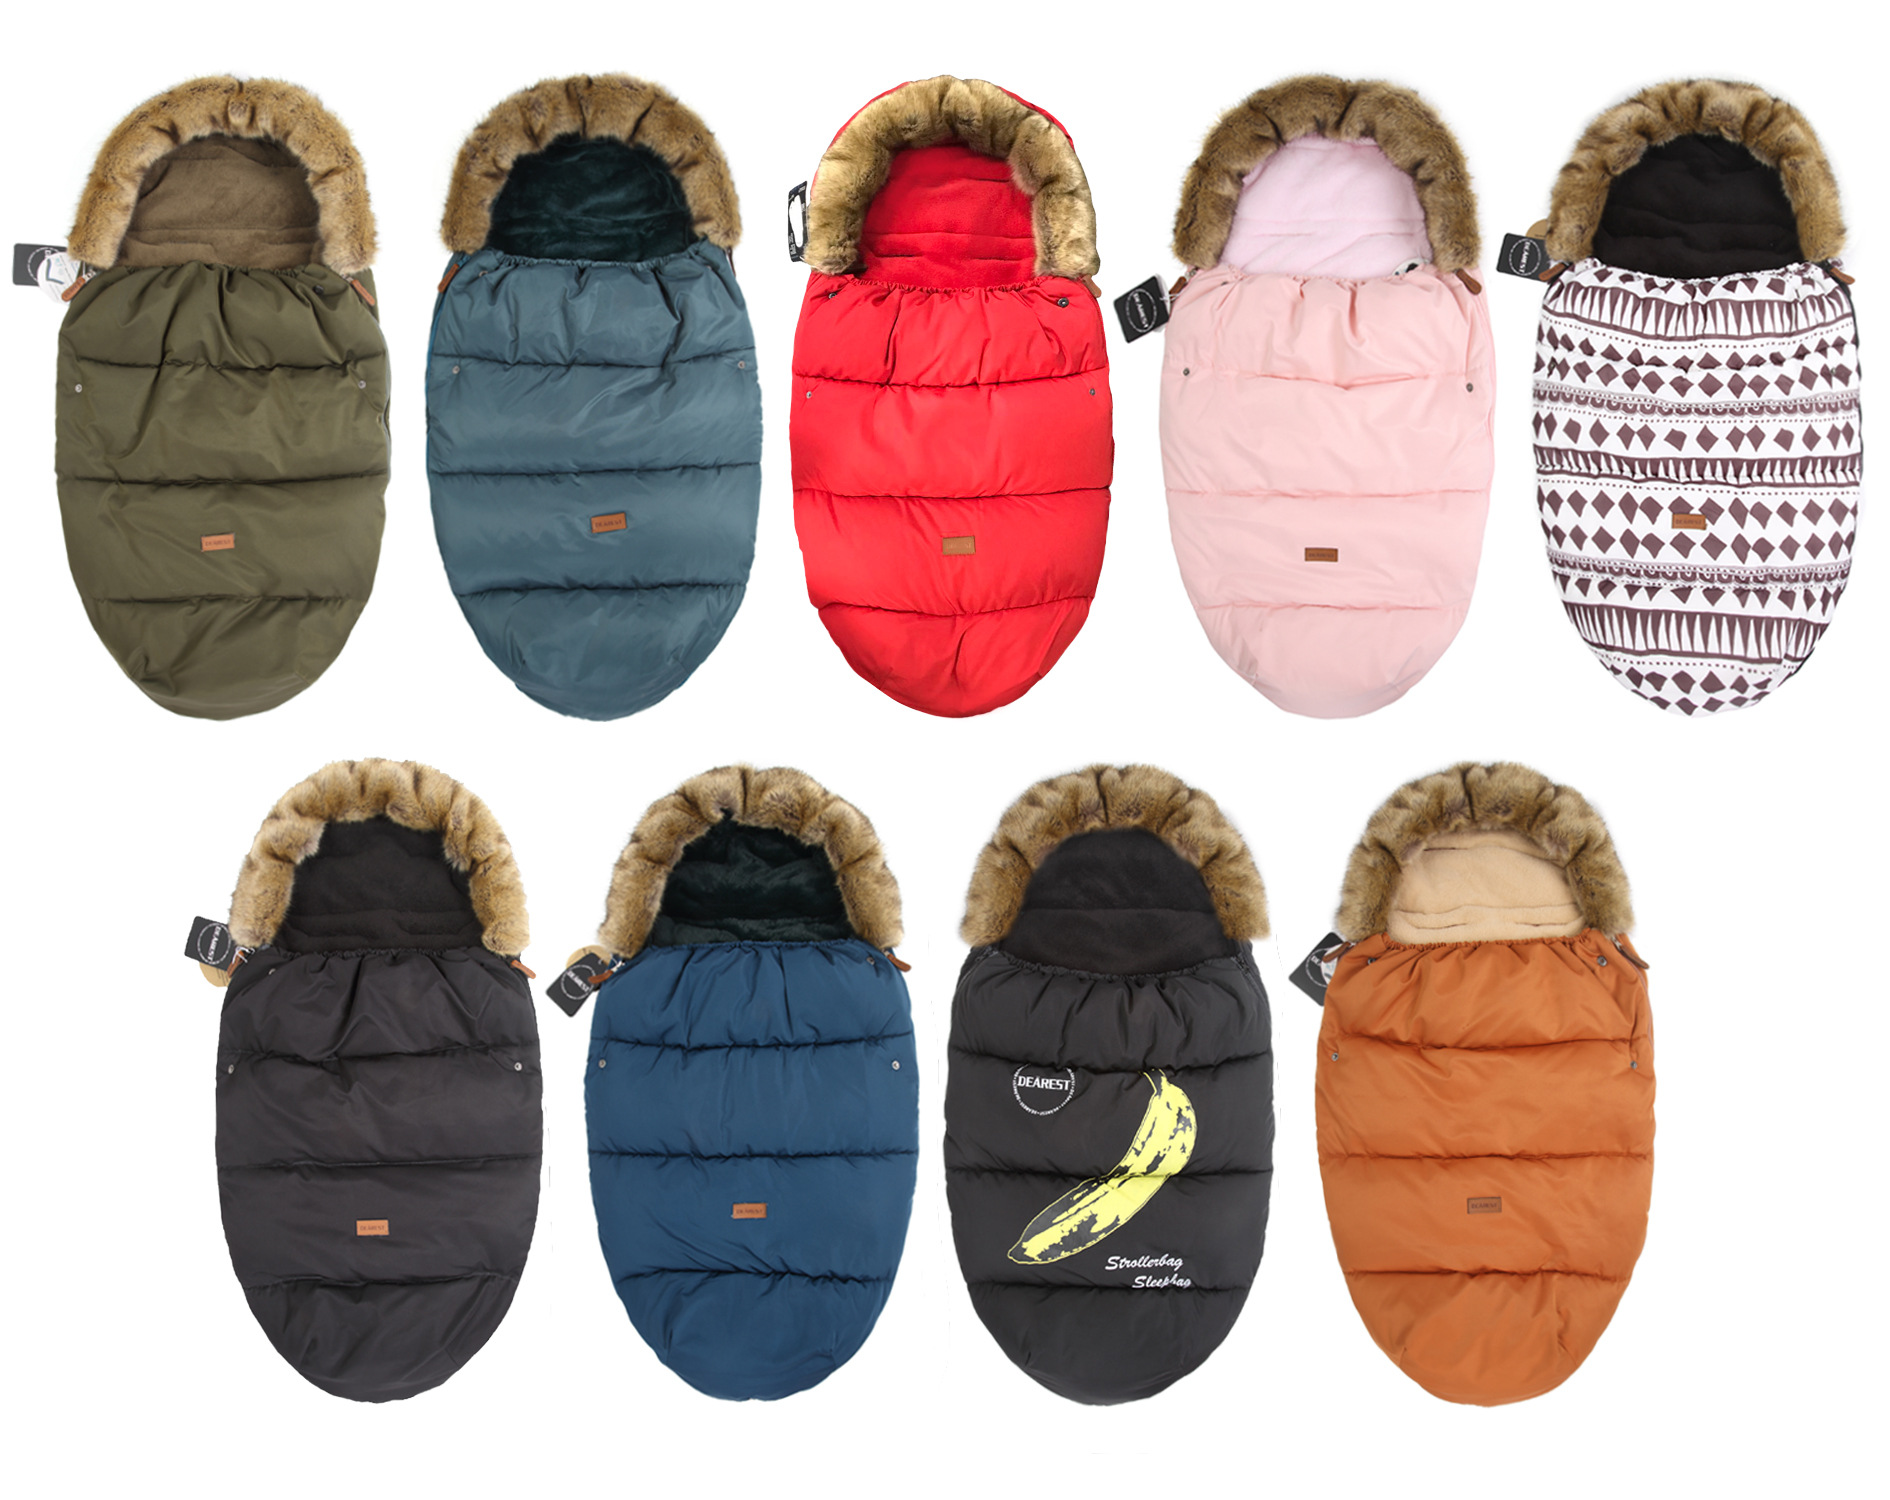 Baby Stroller Sleeping Bags Warm Oversized Envelope Velvet Thickening Winter Foot Muff Windproof Fur Collar Baby Wrap Quilt baby stroller sleeping bags warm oversized envelope velvet thickening winter foot muff windproof fur collar baby wrap quilt